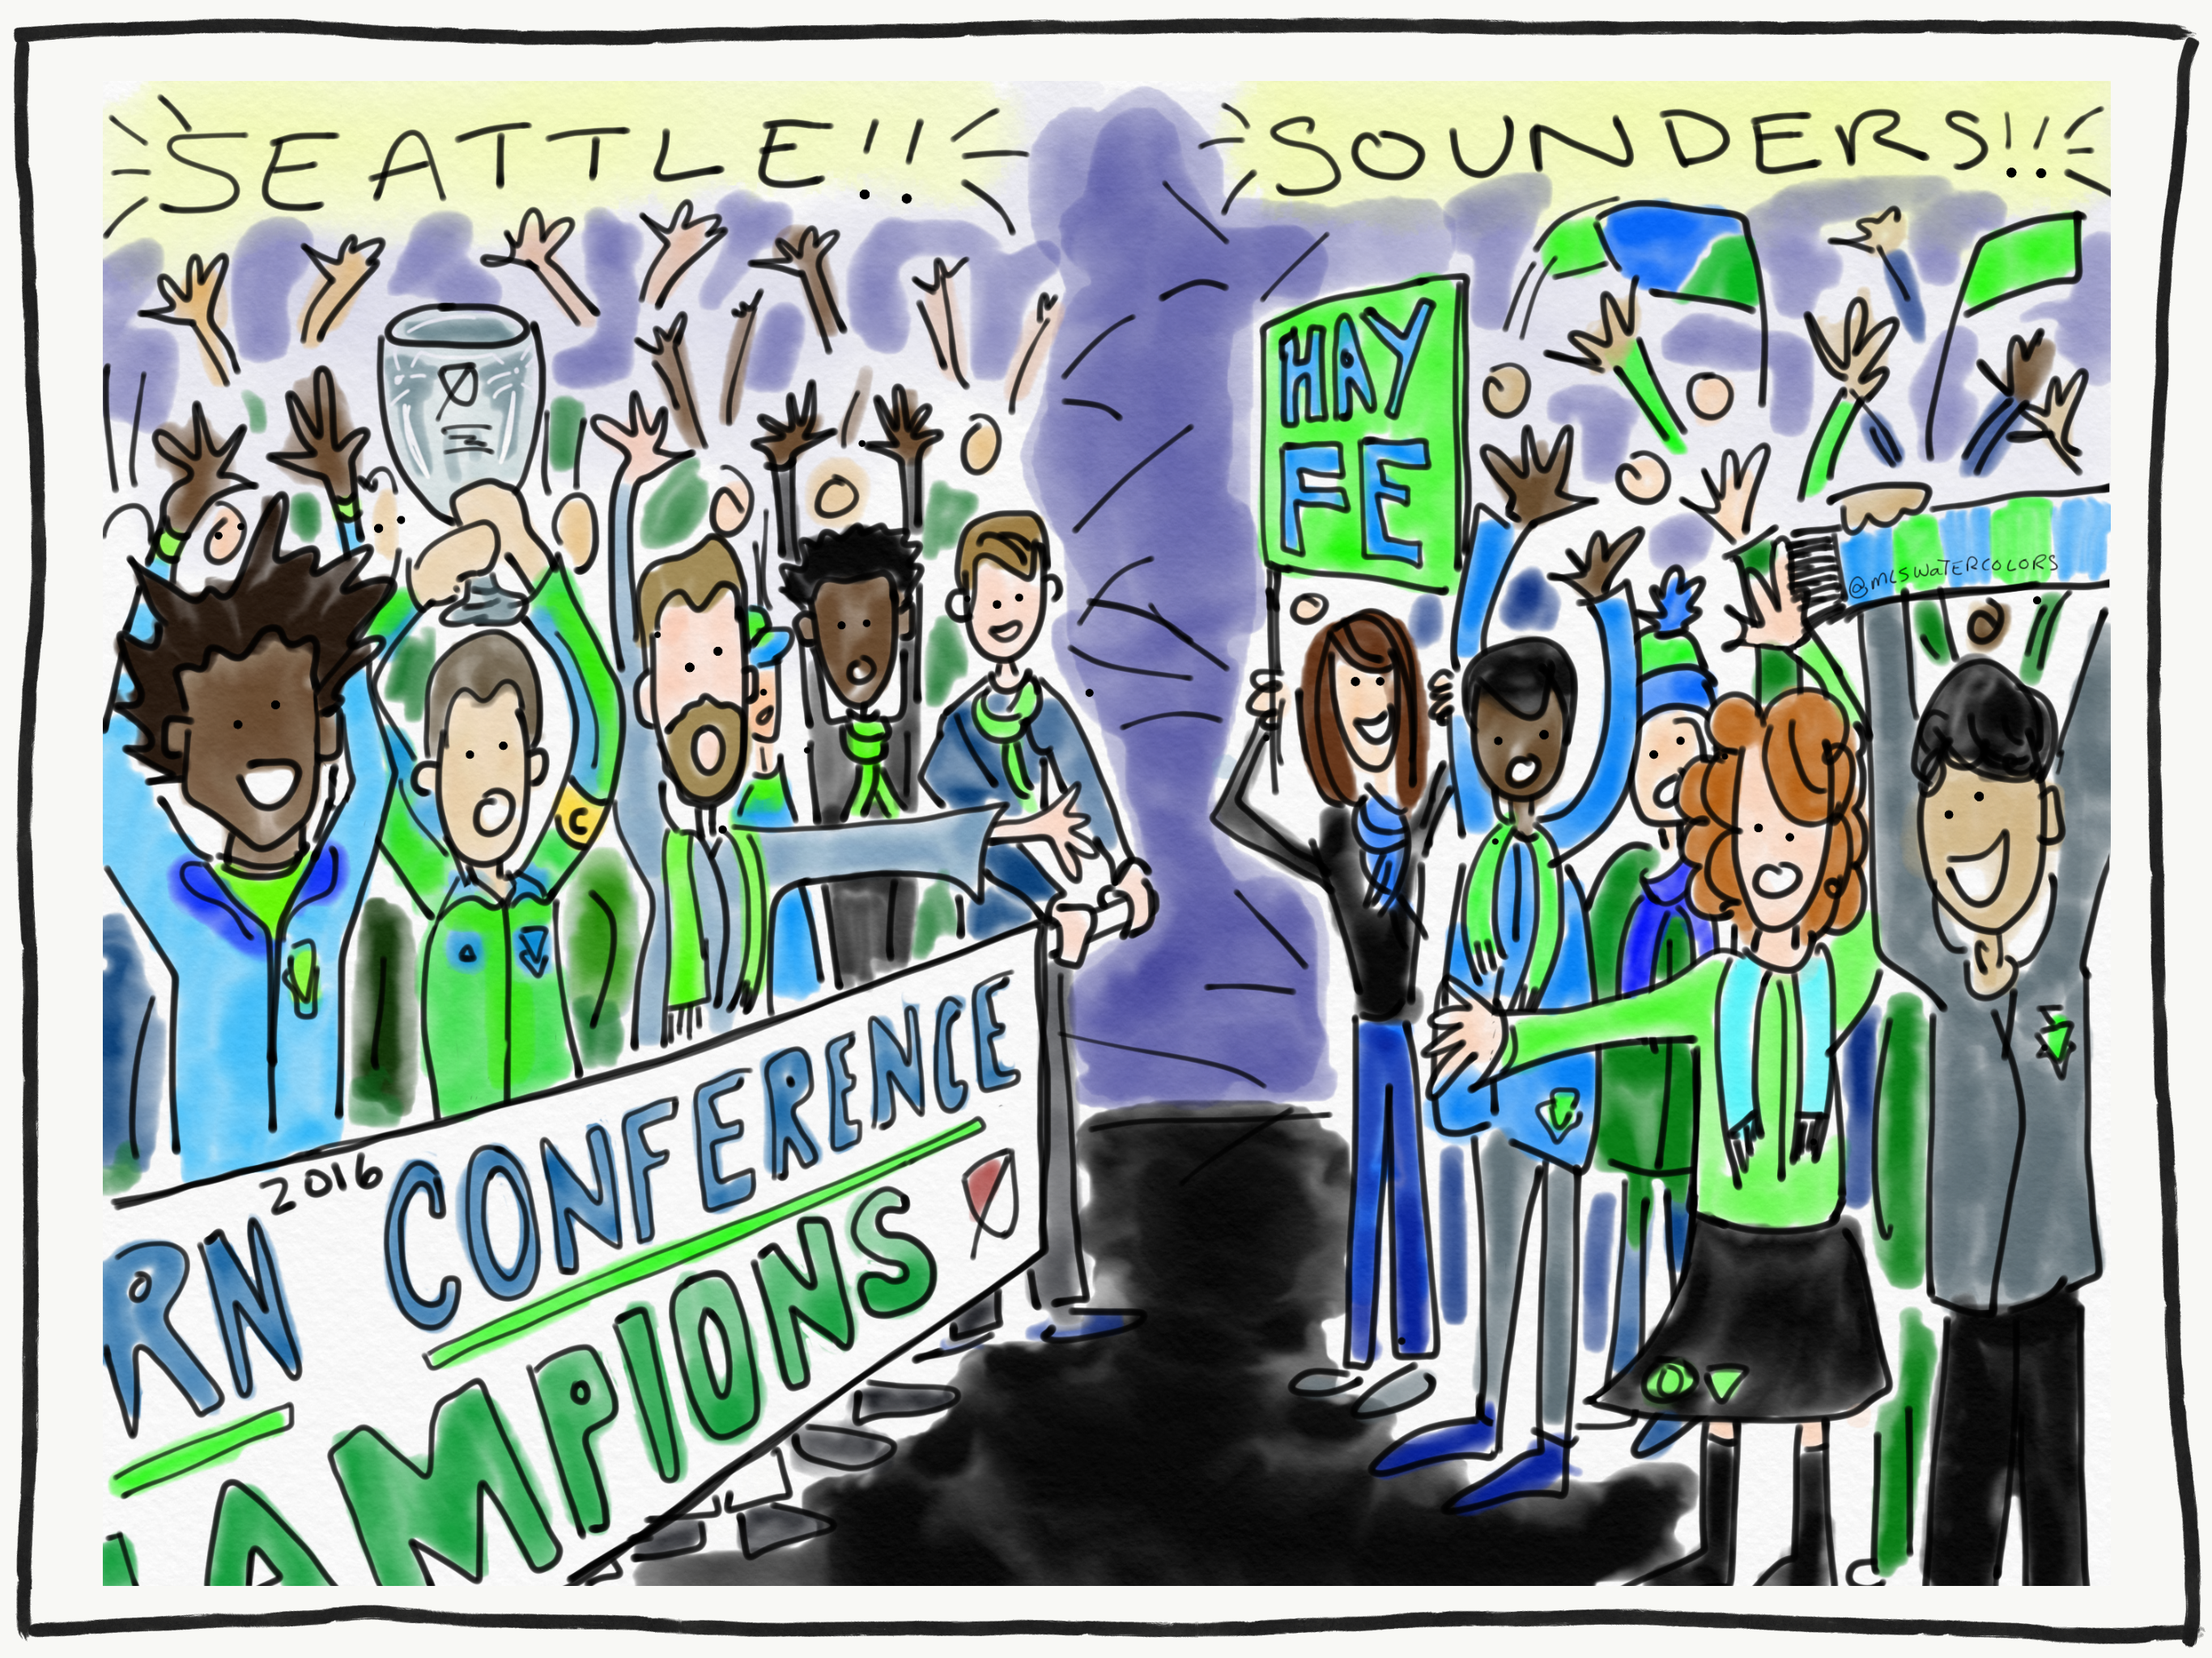 Seattle Sounders at the airport